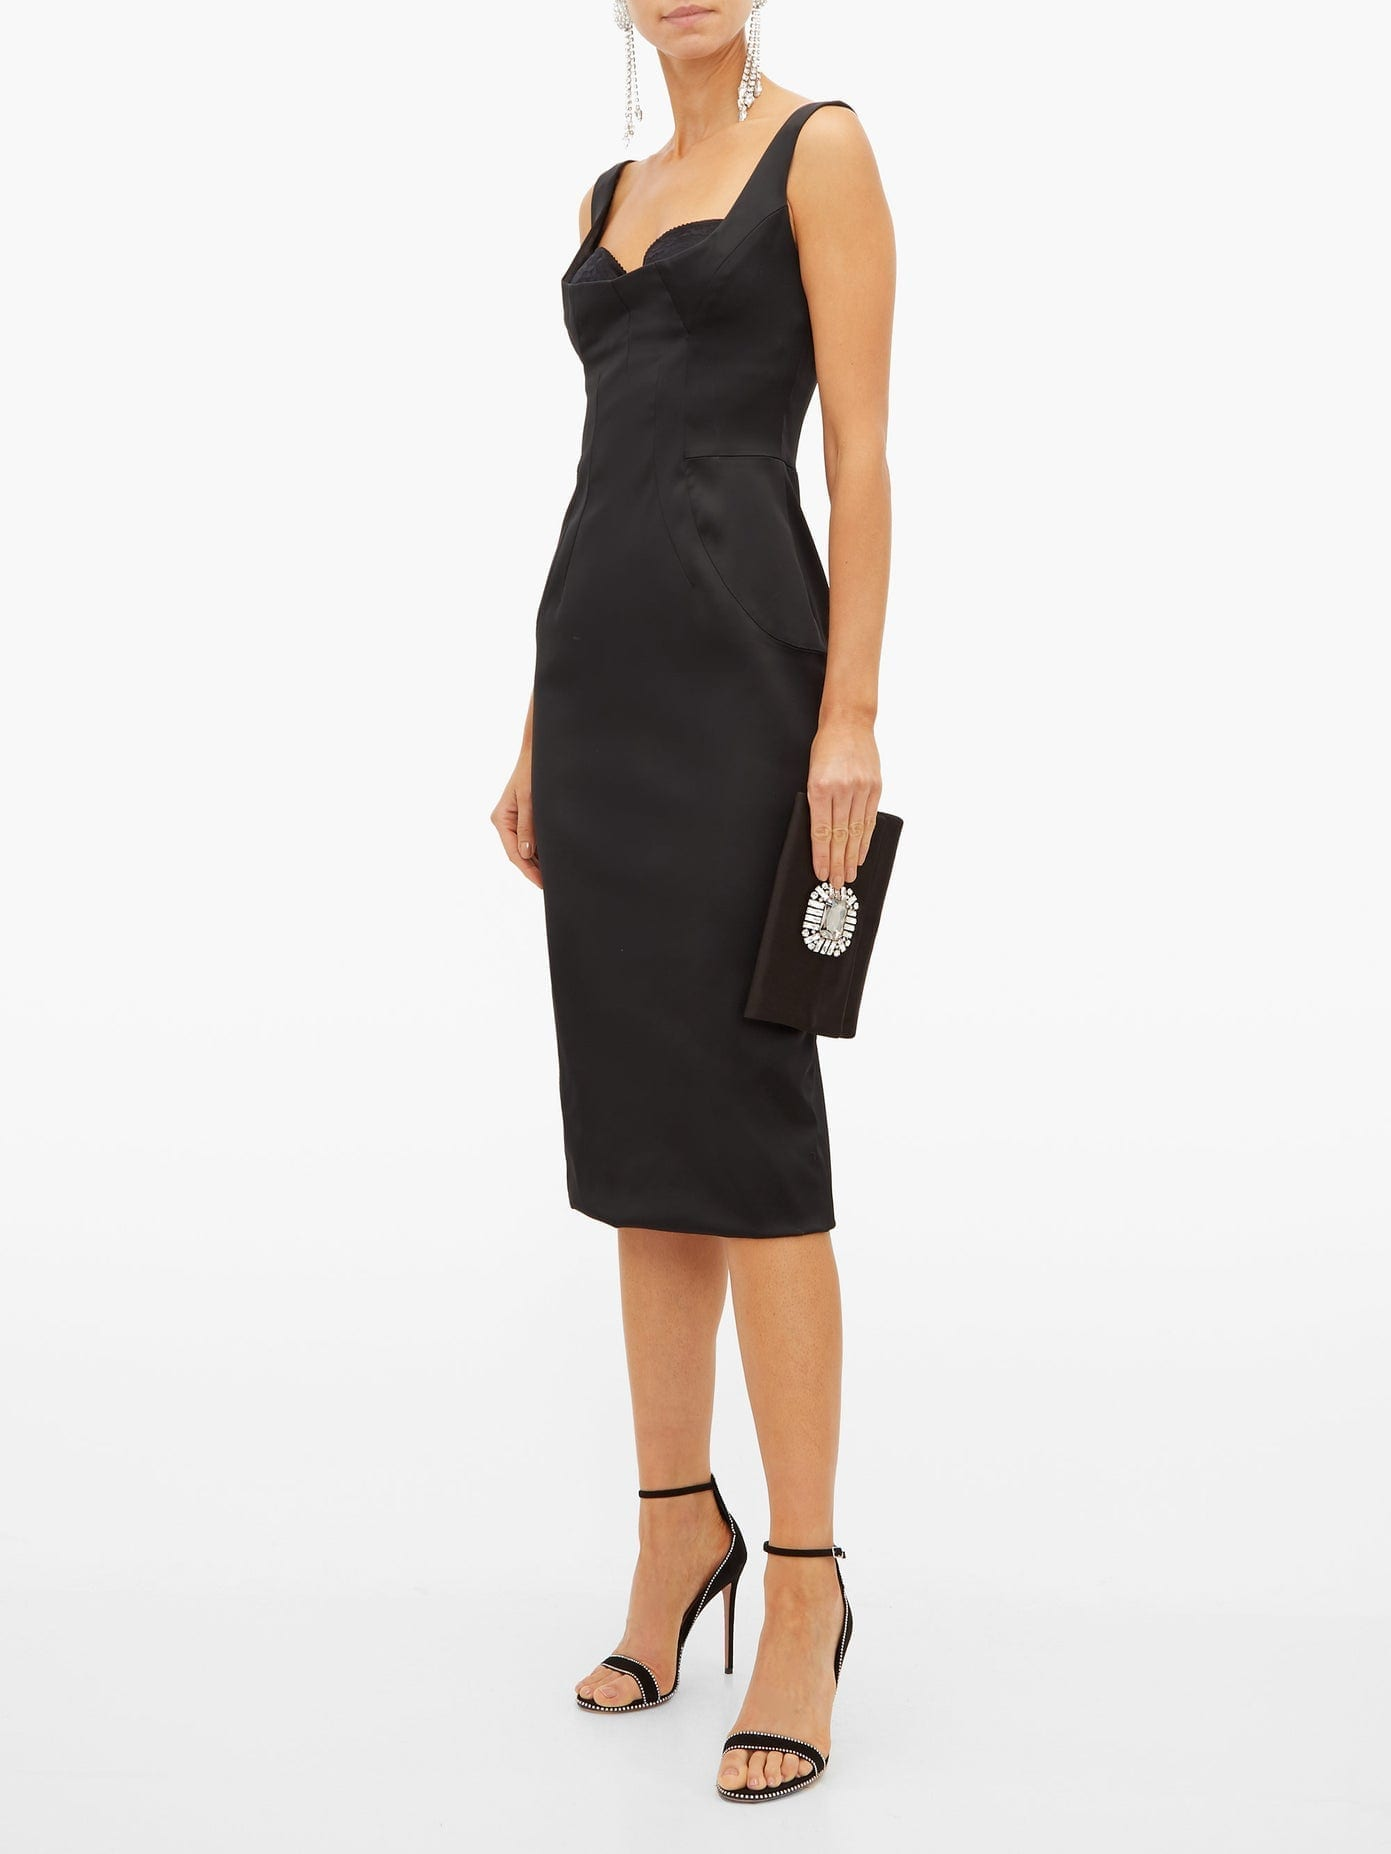 DOLCE & GABBANA Satin Midi Dress